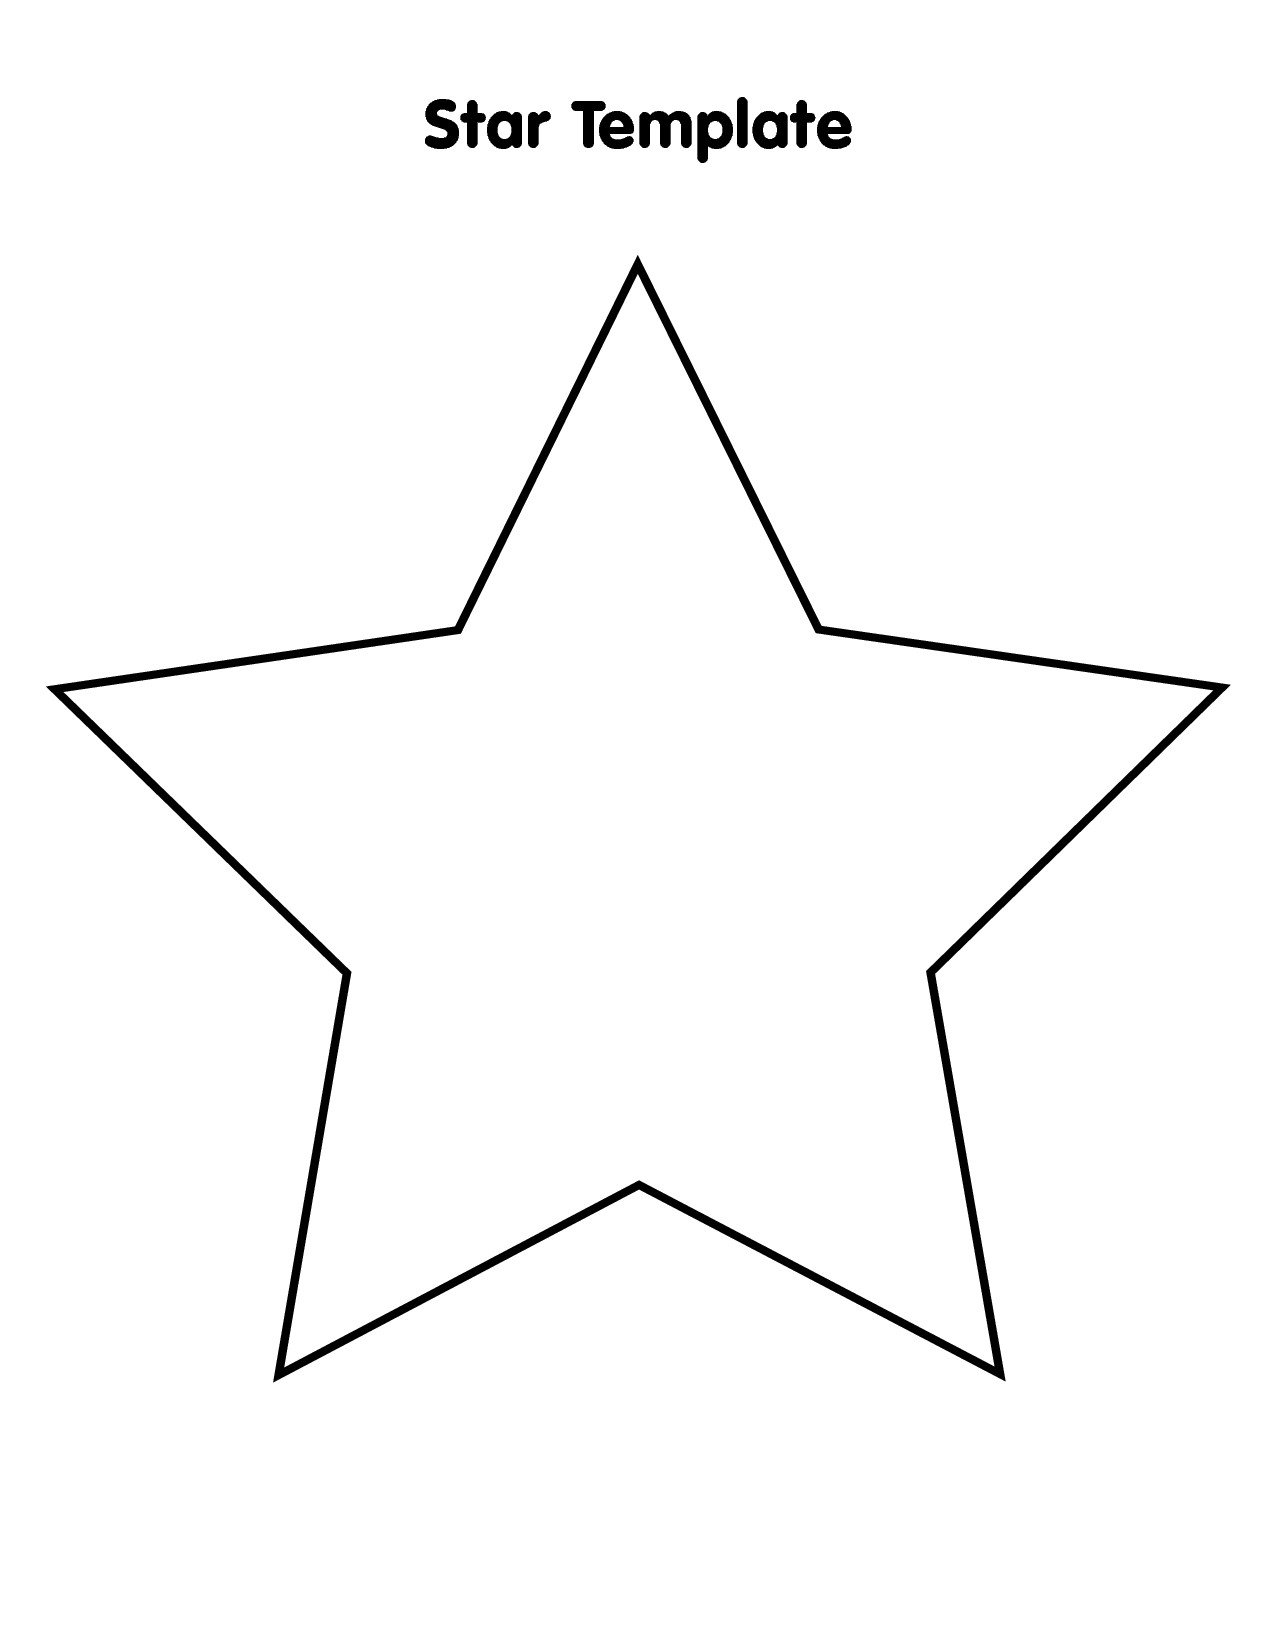 Large Star Template To Print - Cliparts.co